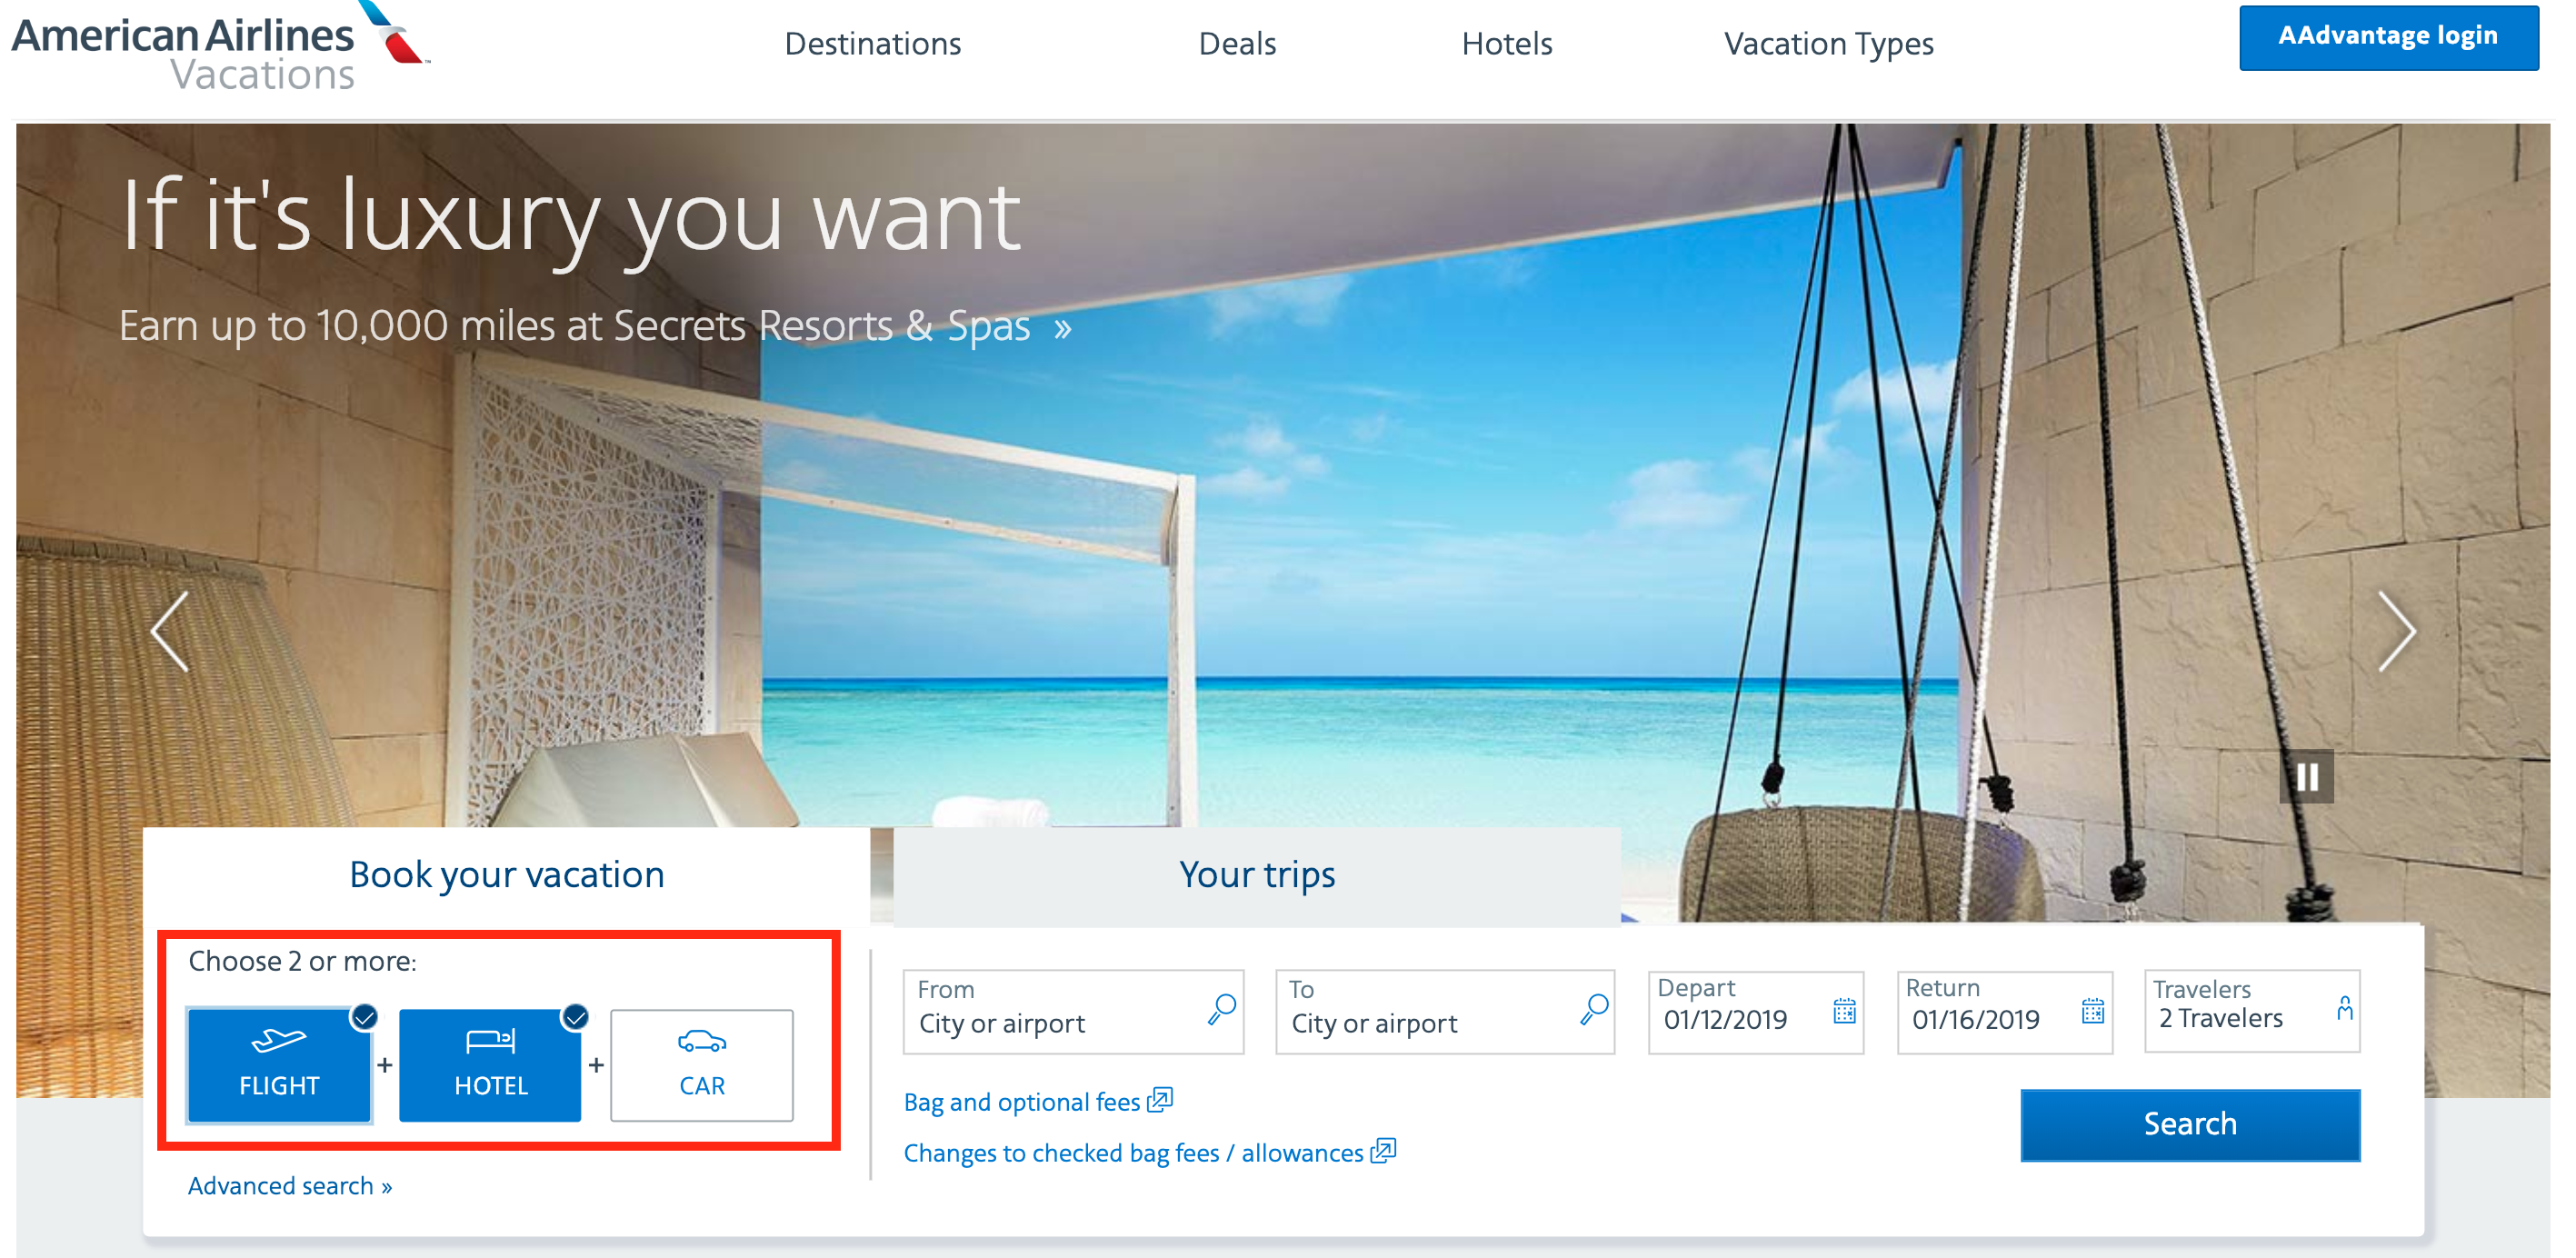 The Ultimate Guide To Booking with American Airlines